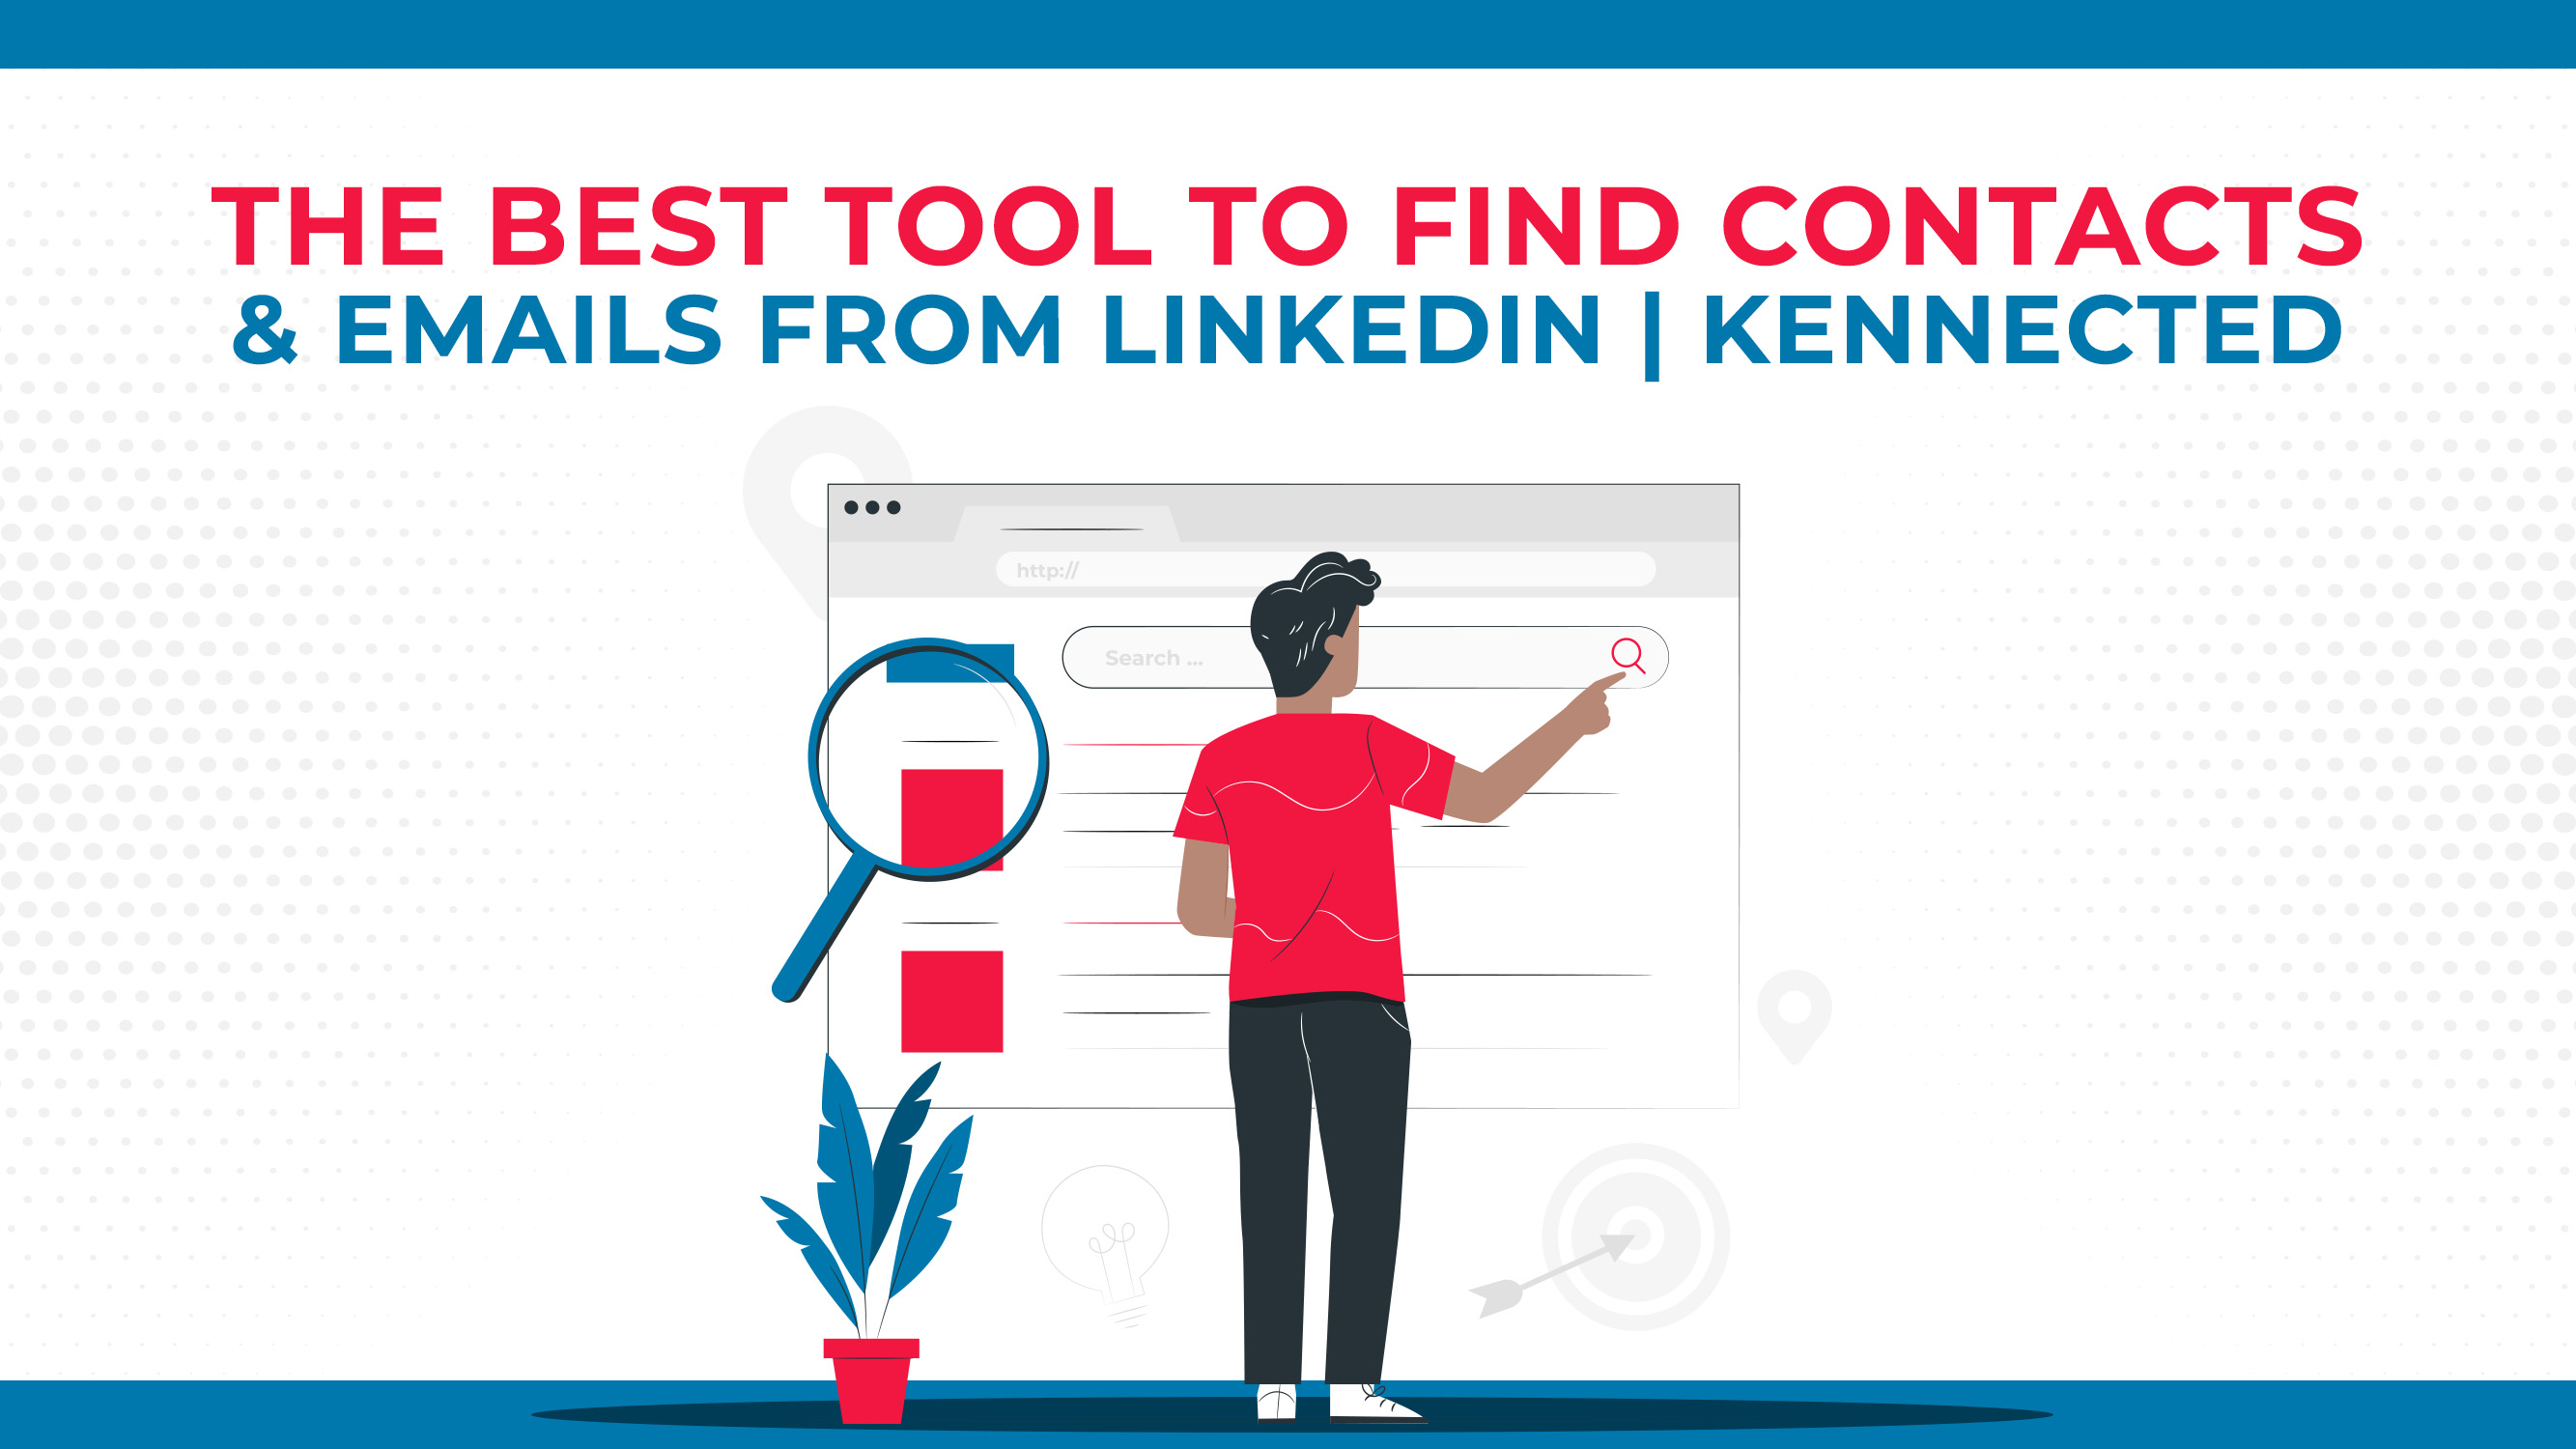 The Best Tool To Find Contacts & Emails From LinkedIn | Kennected